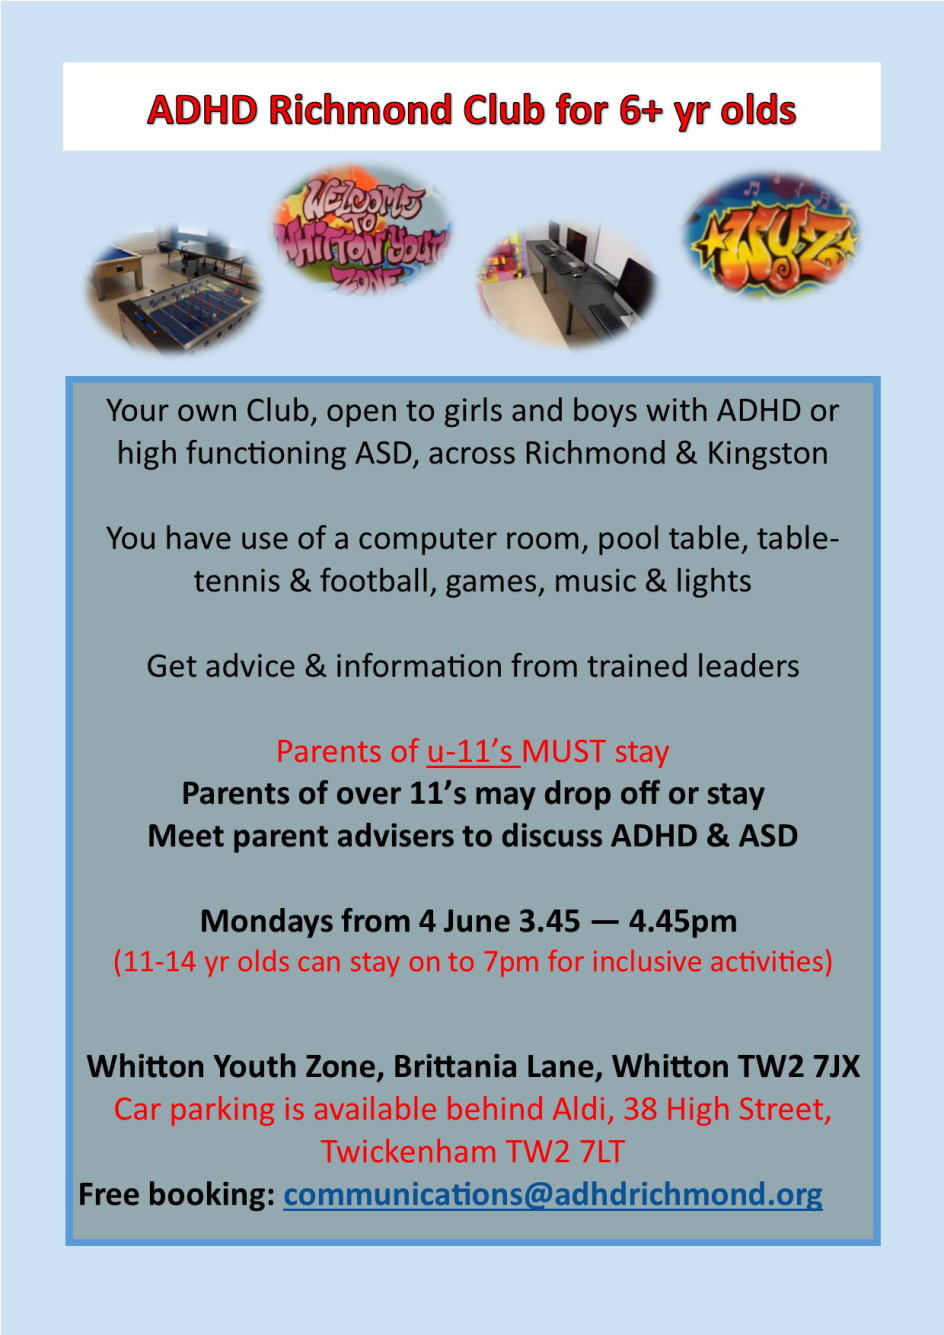 Book for 11 June #ADHD Club for 6+ yr olds @LBRUT #Whitton e: communications@adhdrichmond.org